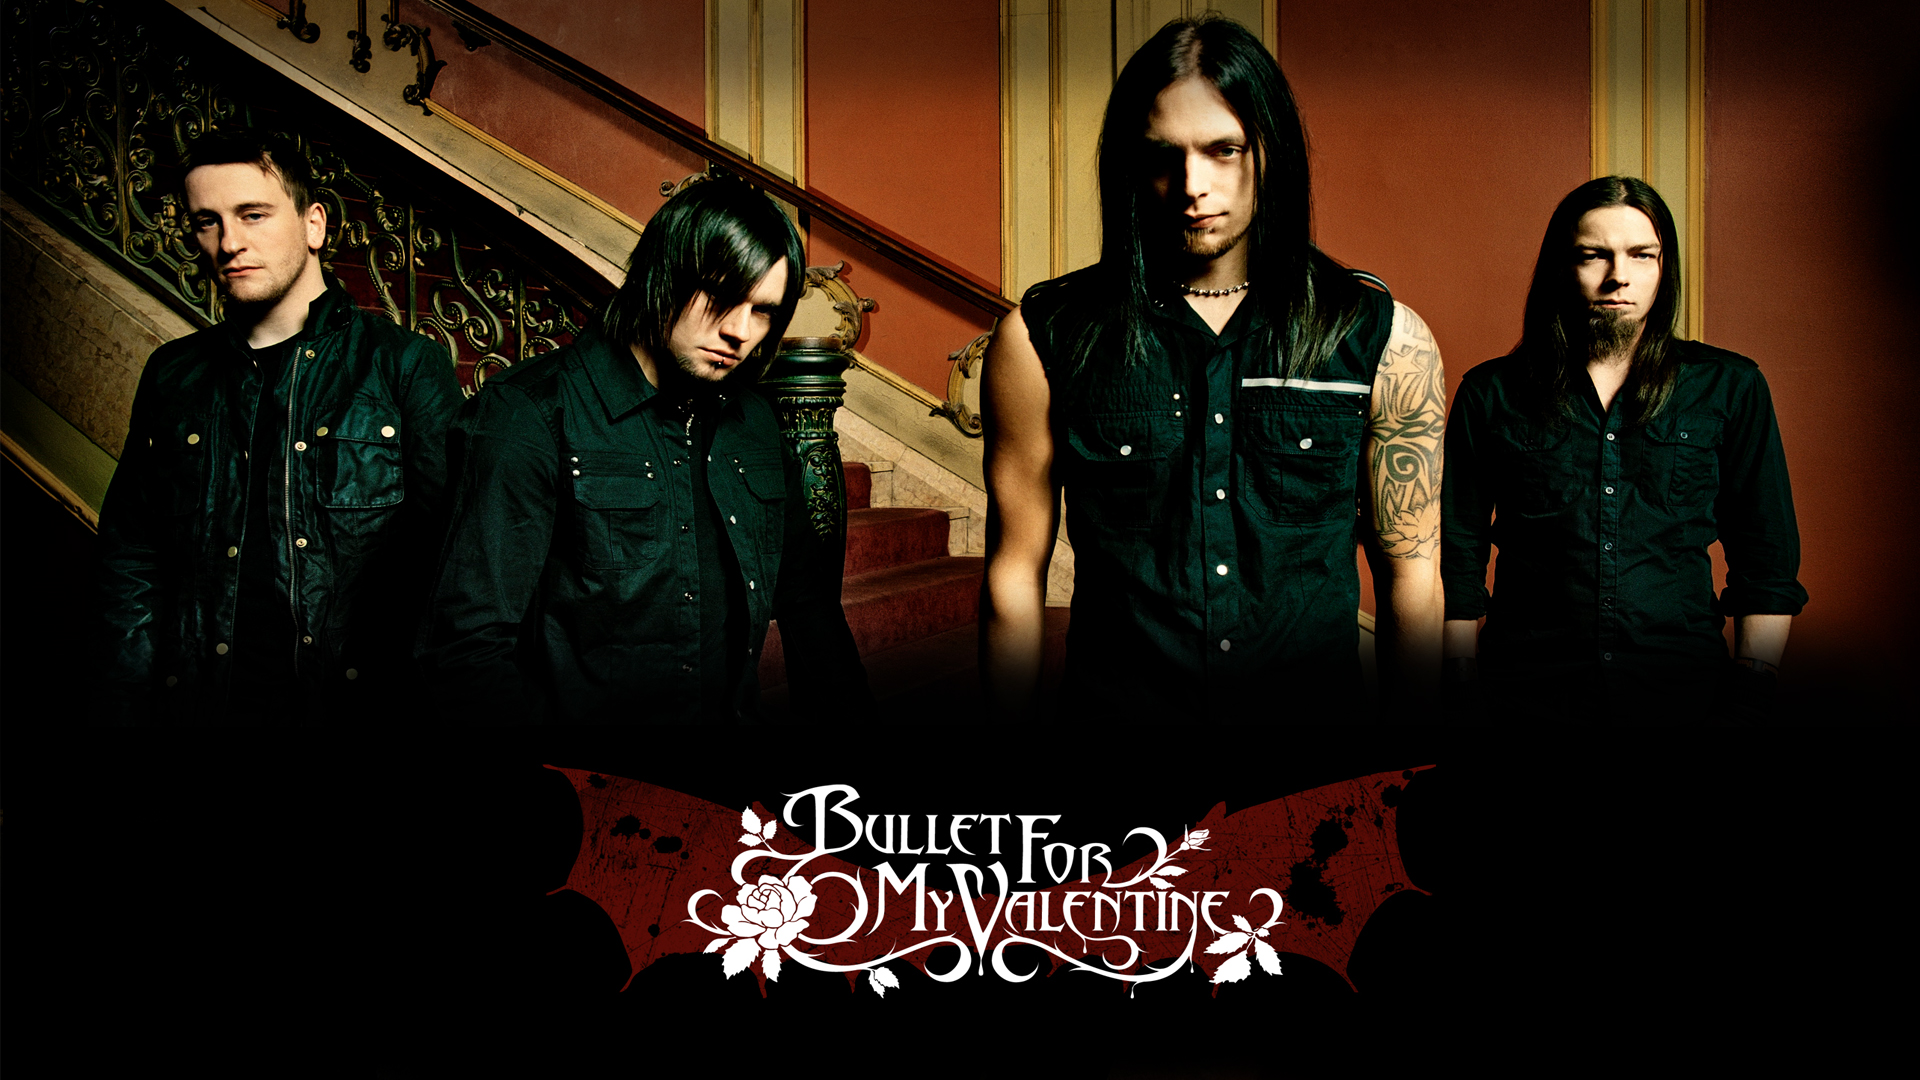 Free Download Music Bullet For My Valentine Wallpaper 1920x1080